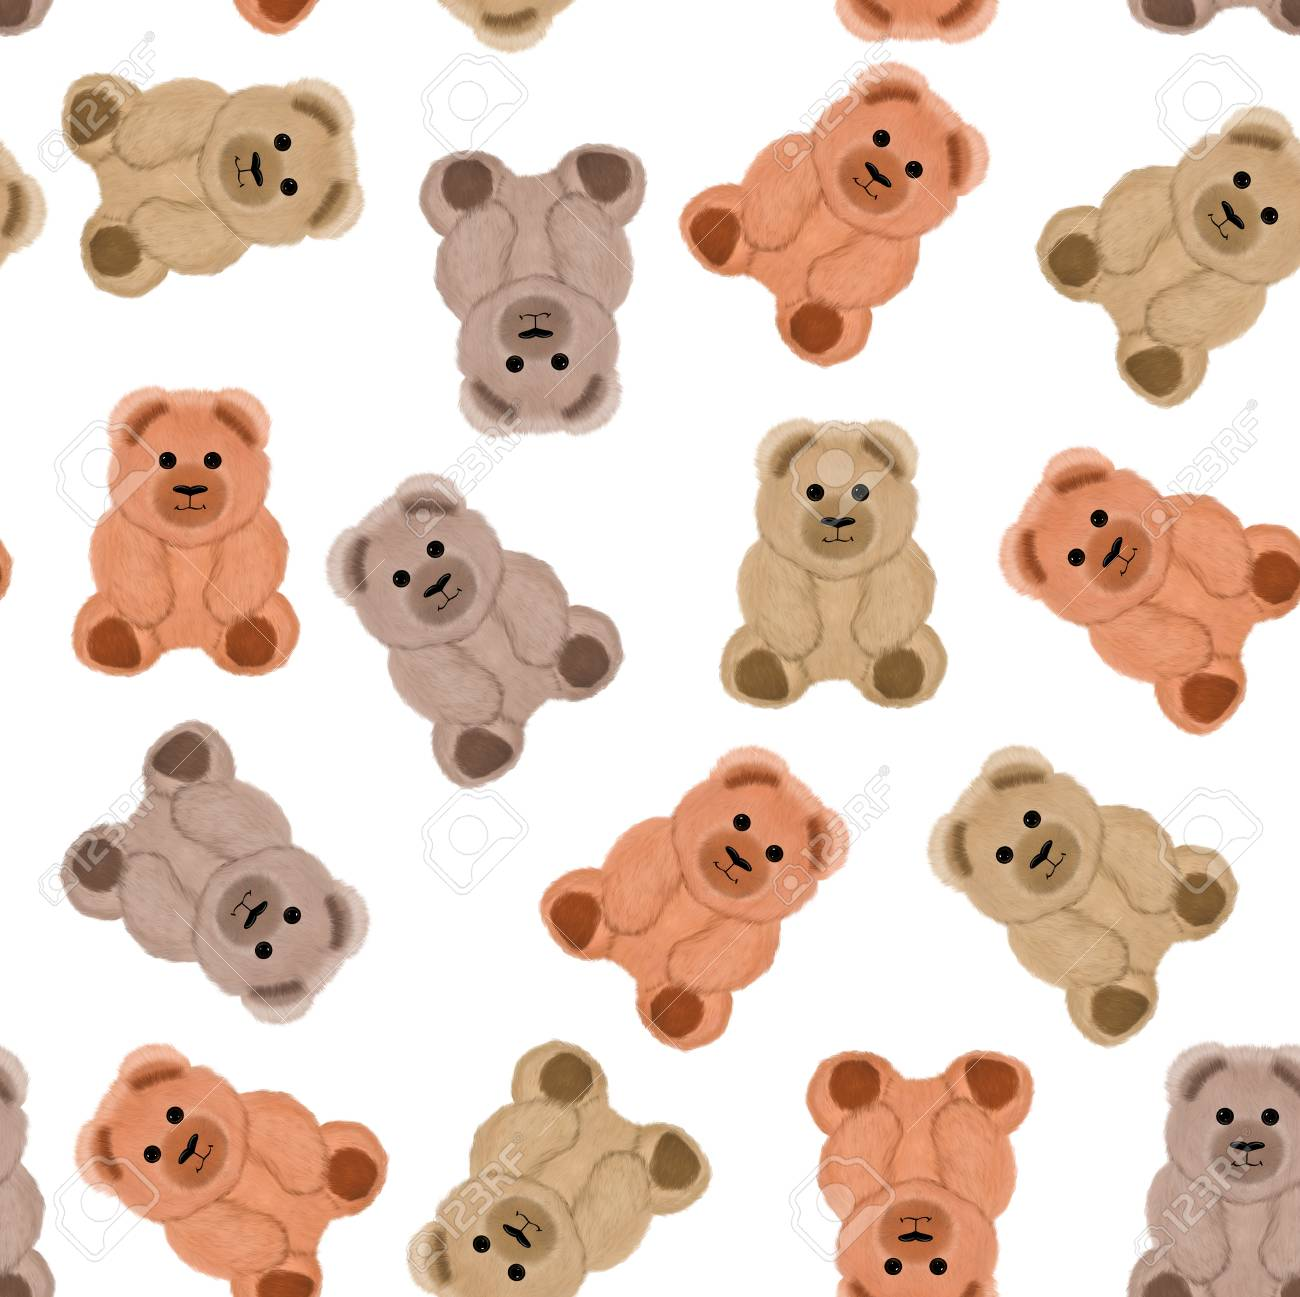 Seamless pattern and background with teddy bears  On a white